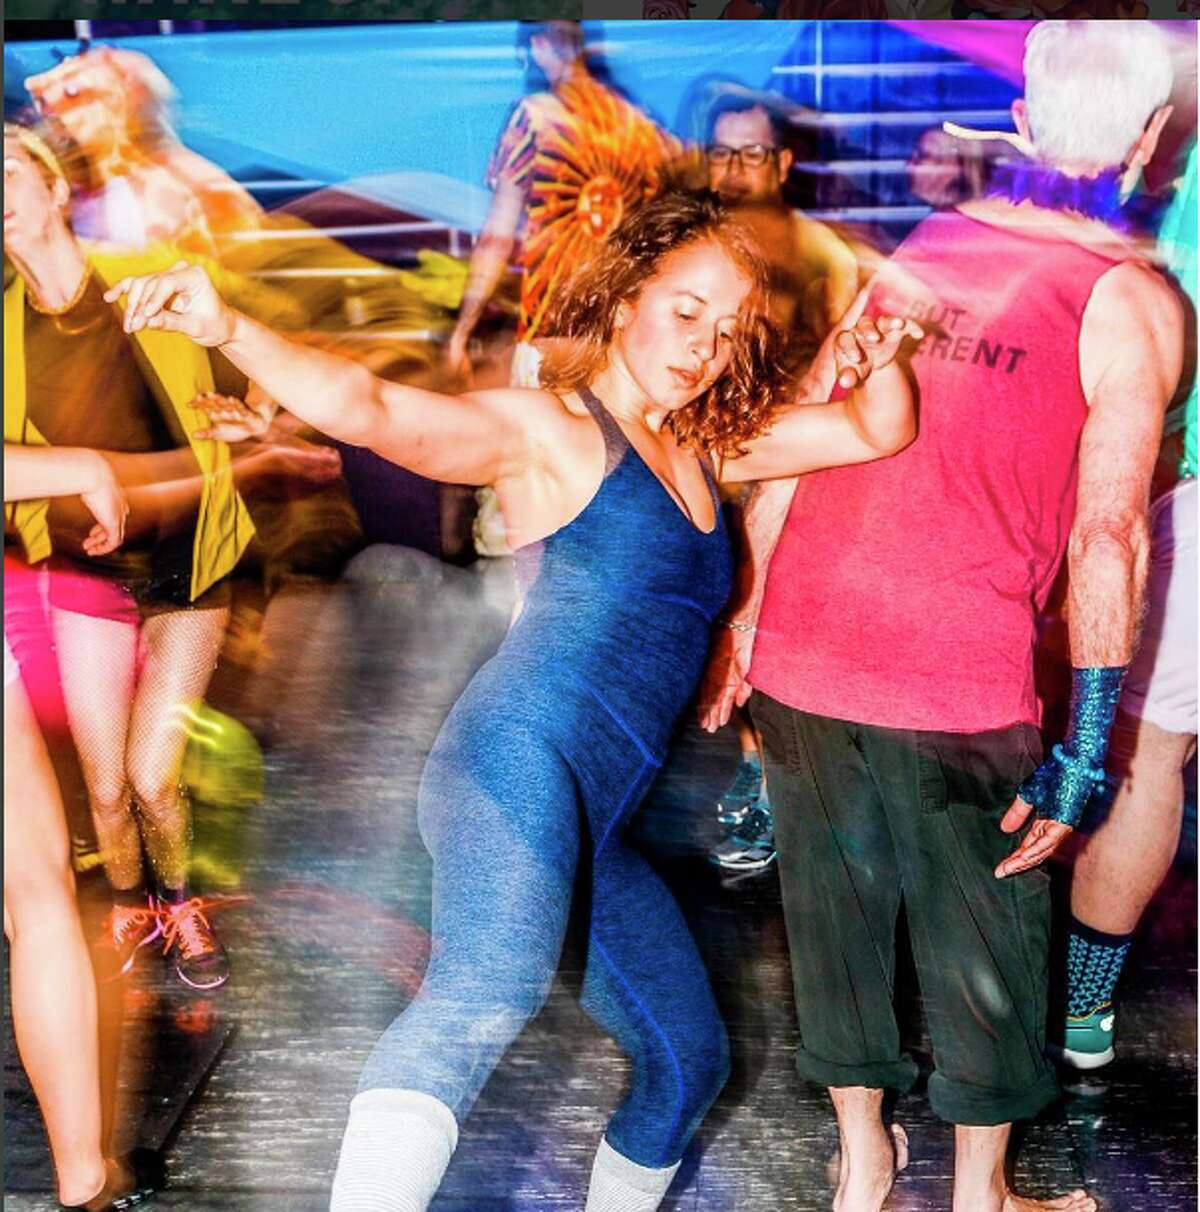 Morning Glorville: A rave that starts at 6.30am and ends at 10.30am. The rave offers inspirational, energizing music and mesmerizing visual entertainment as well as free massage, organic coffee, smoothie bars, yoga, and personal motivation from trained and costumed performers.